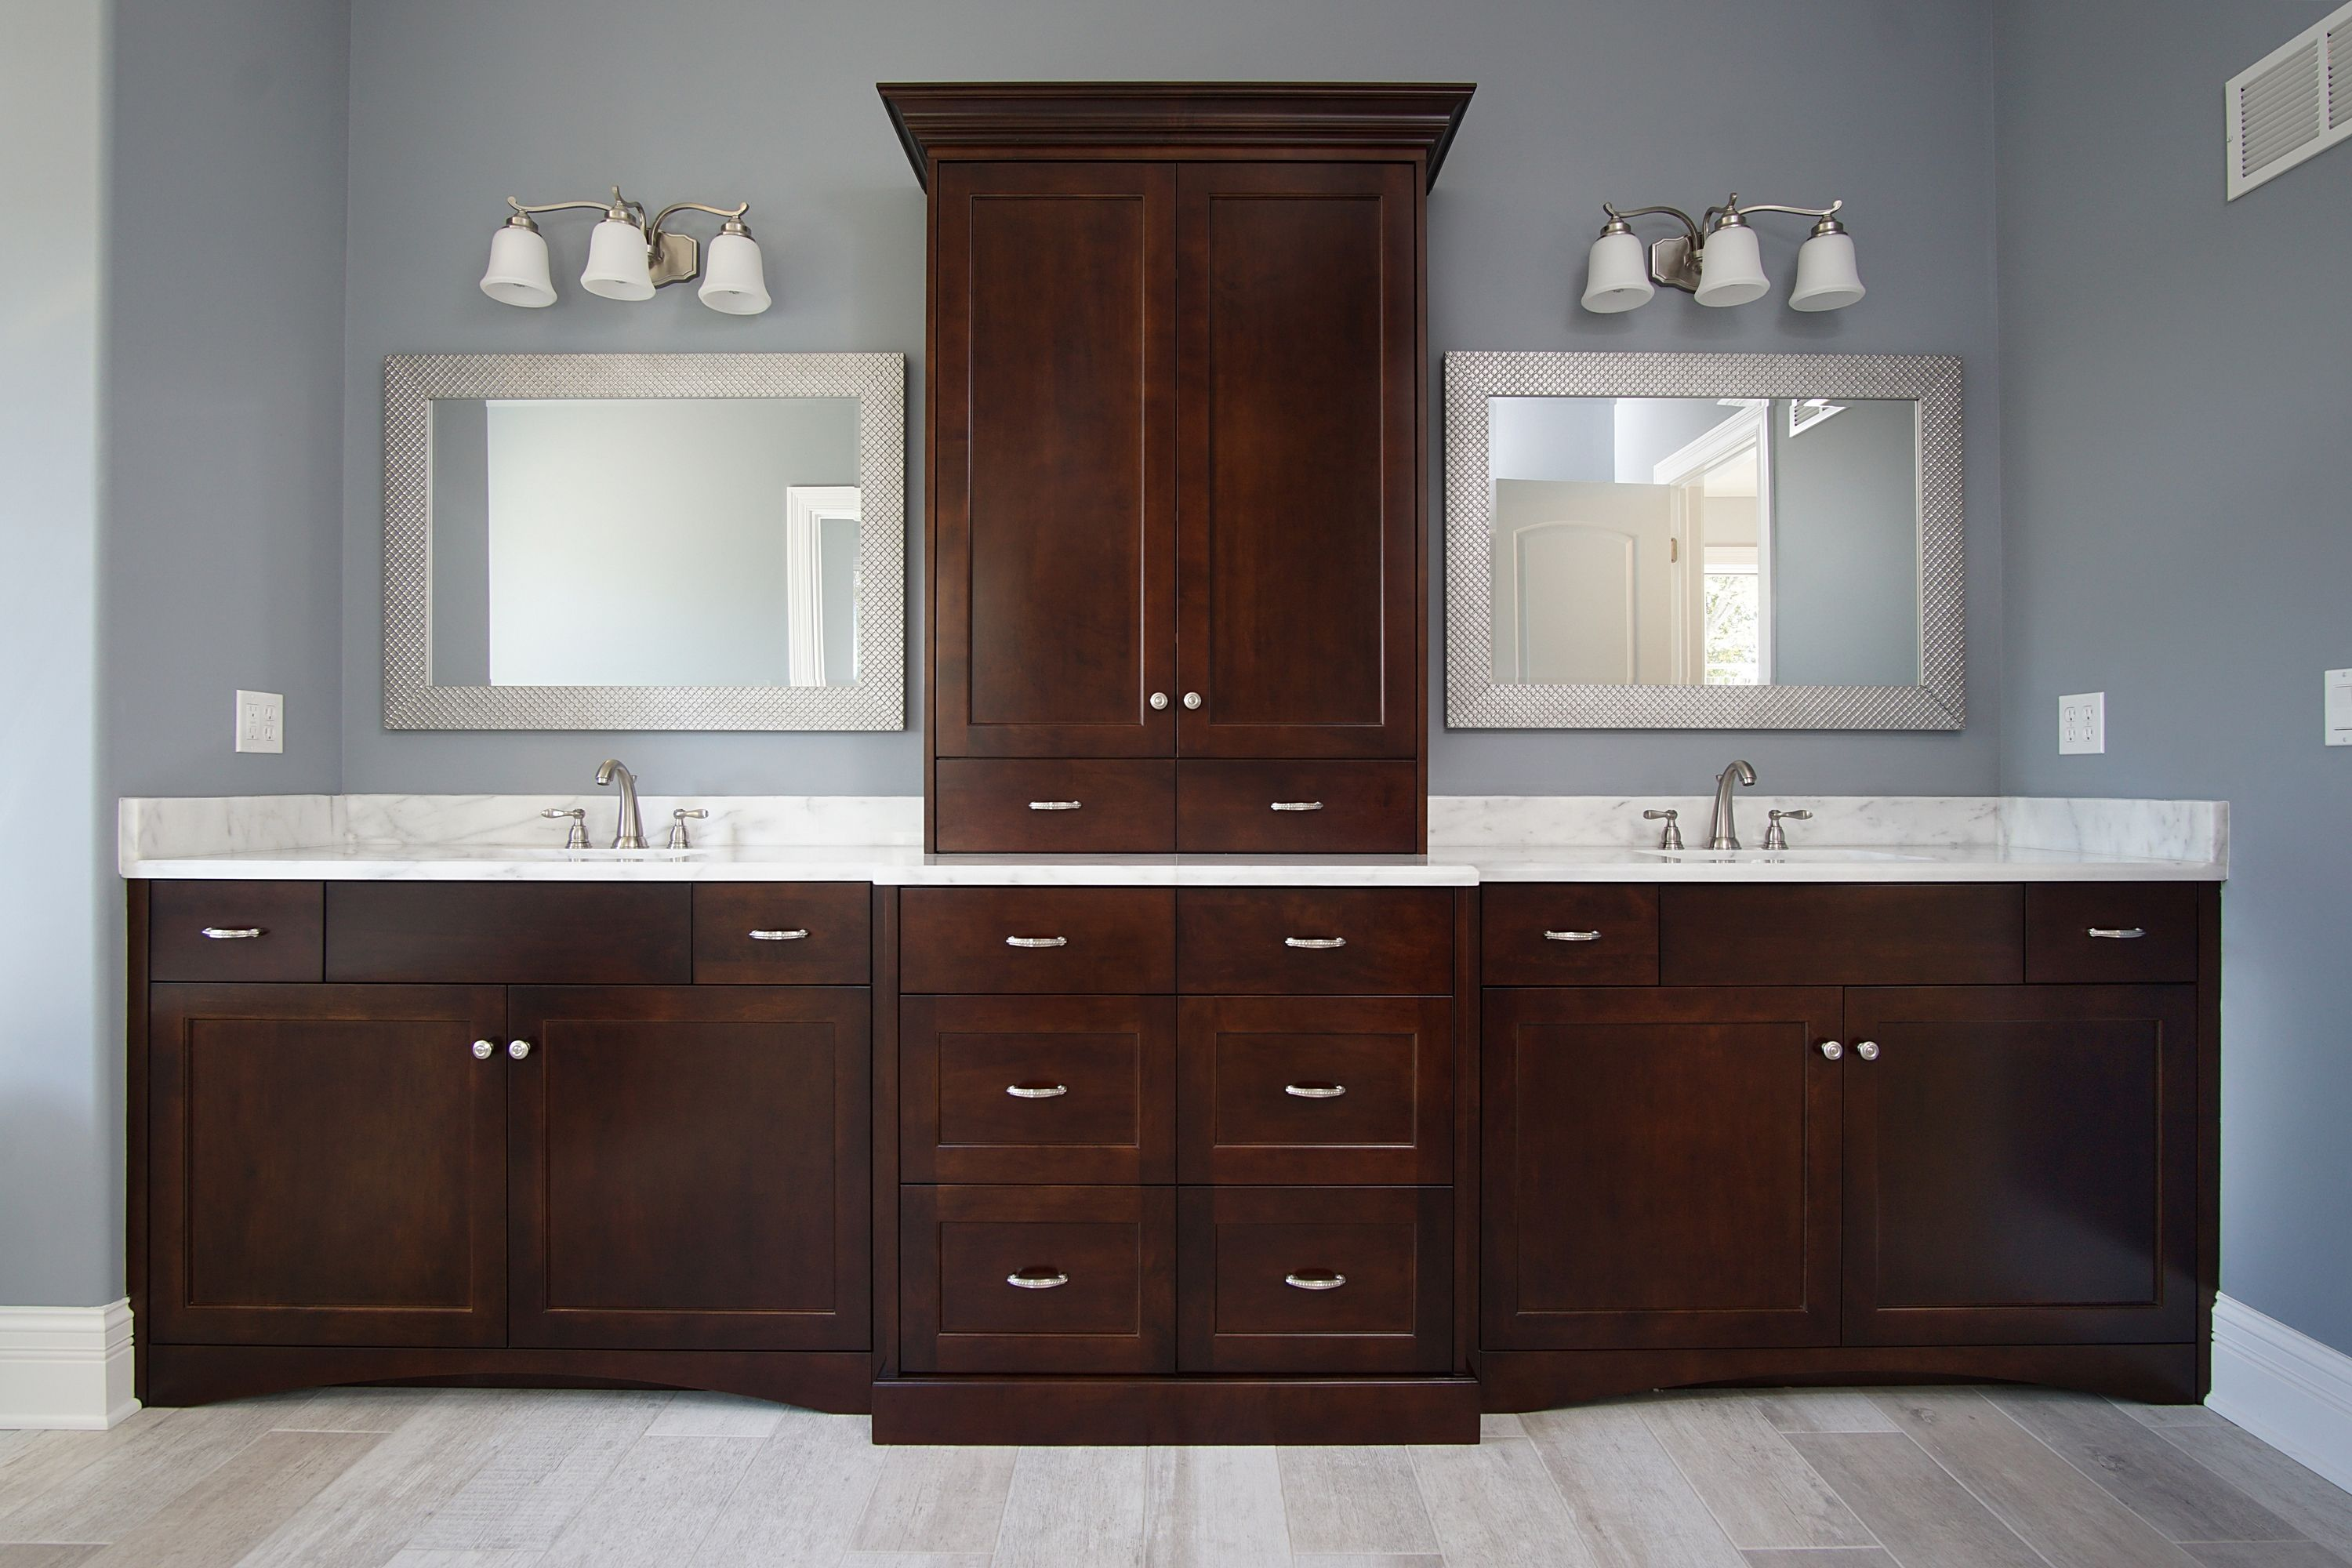 Master Bathroom His Her Vanity With Cabinet Tower Dark Brown Wood Cabinets Brown Bathroom Vanity Dark Brown Cabinets Dark Wood Cabinets